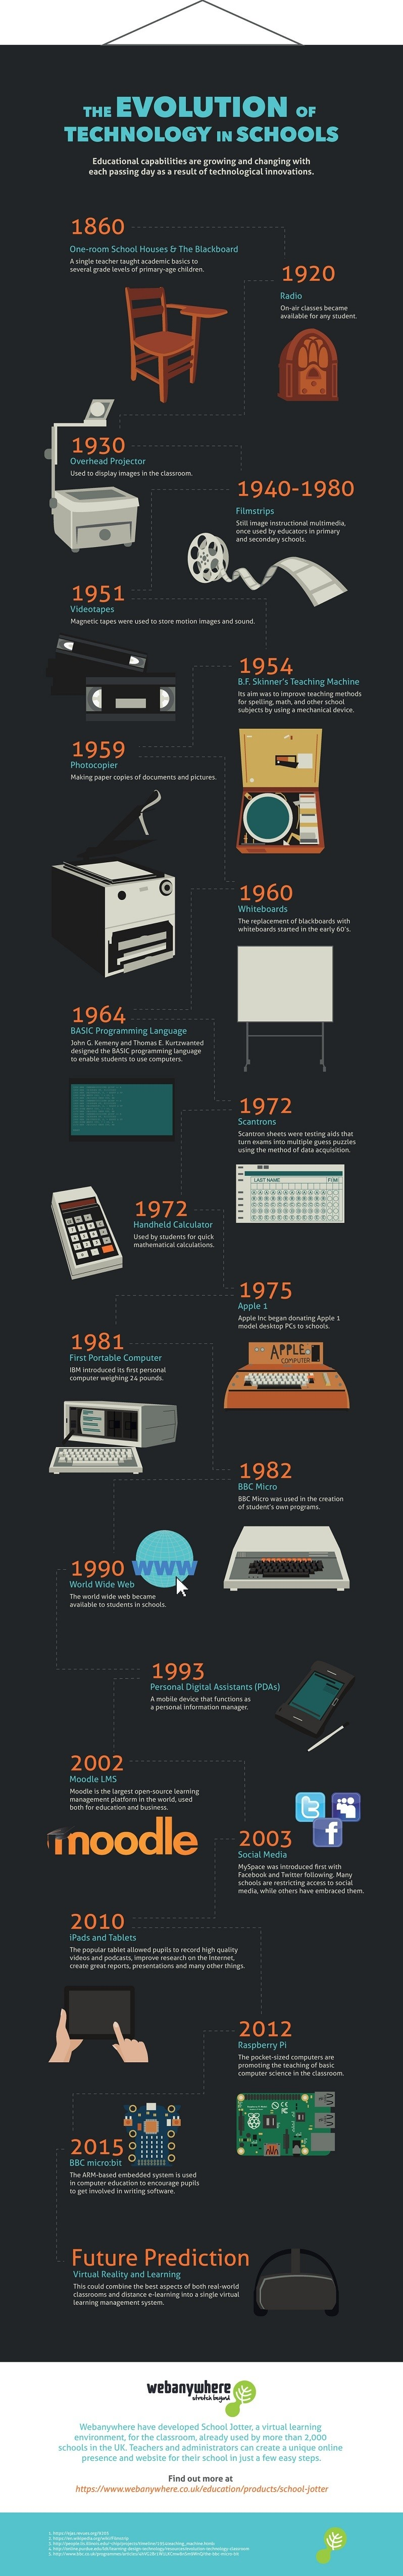 the evolution of technology History & evolution of technology key idea: technology has been the driving force in the evolution of society from an agricultural to an industrial to an information.